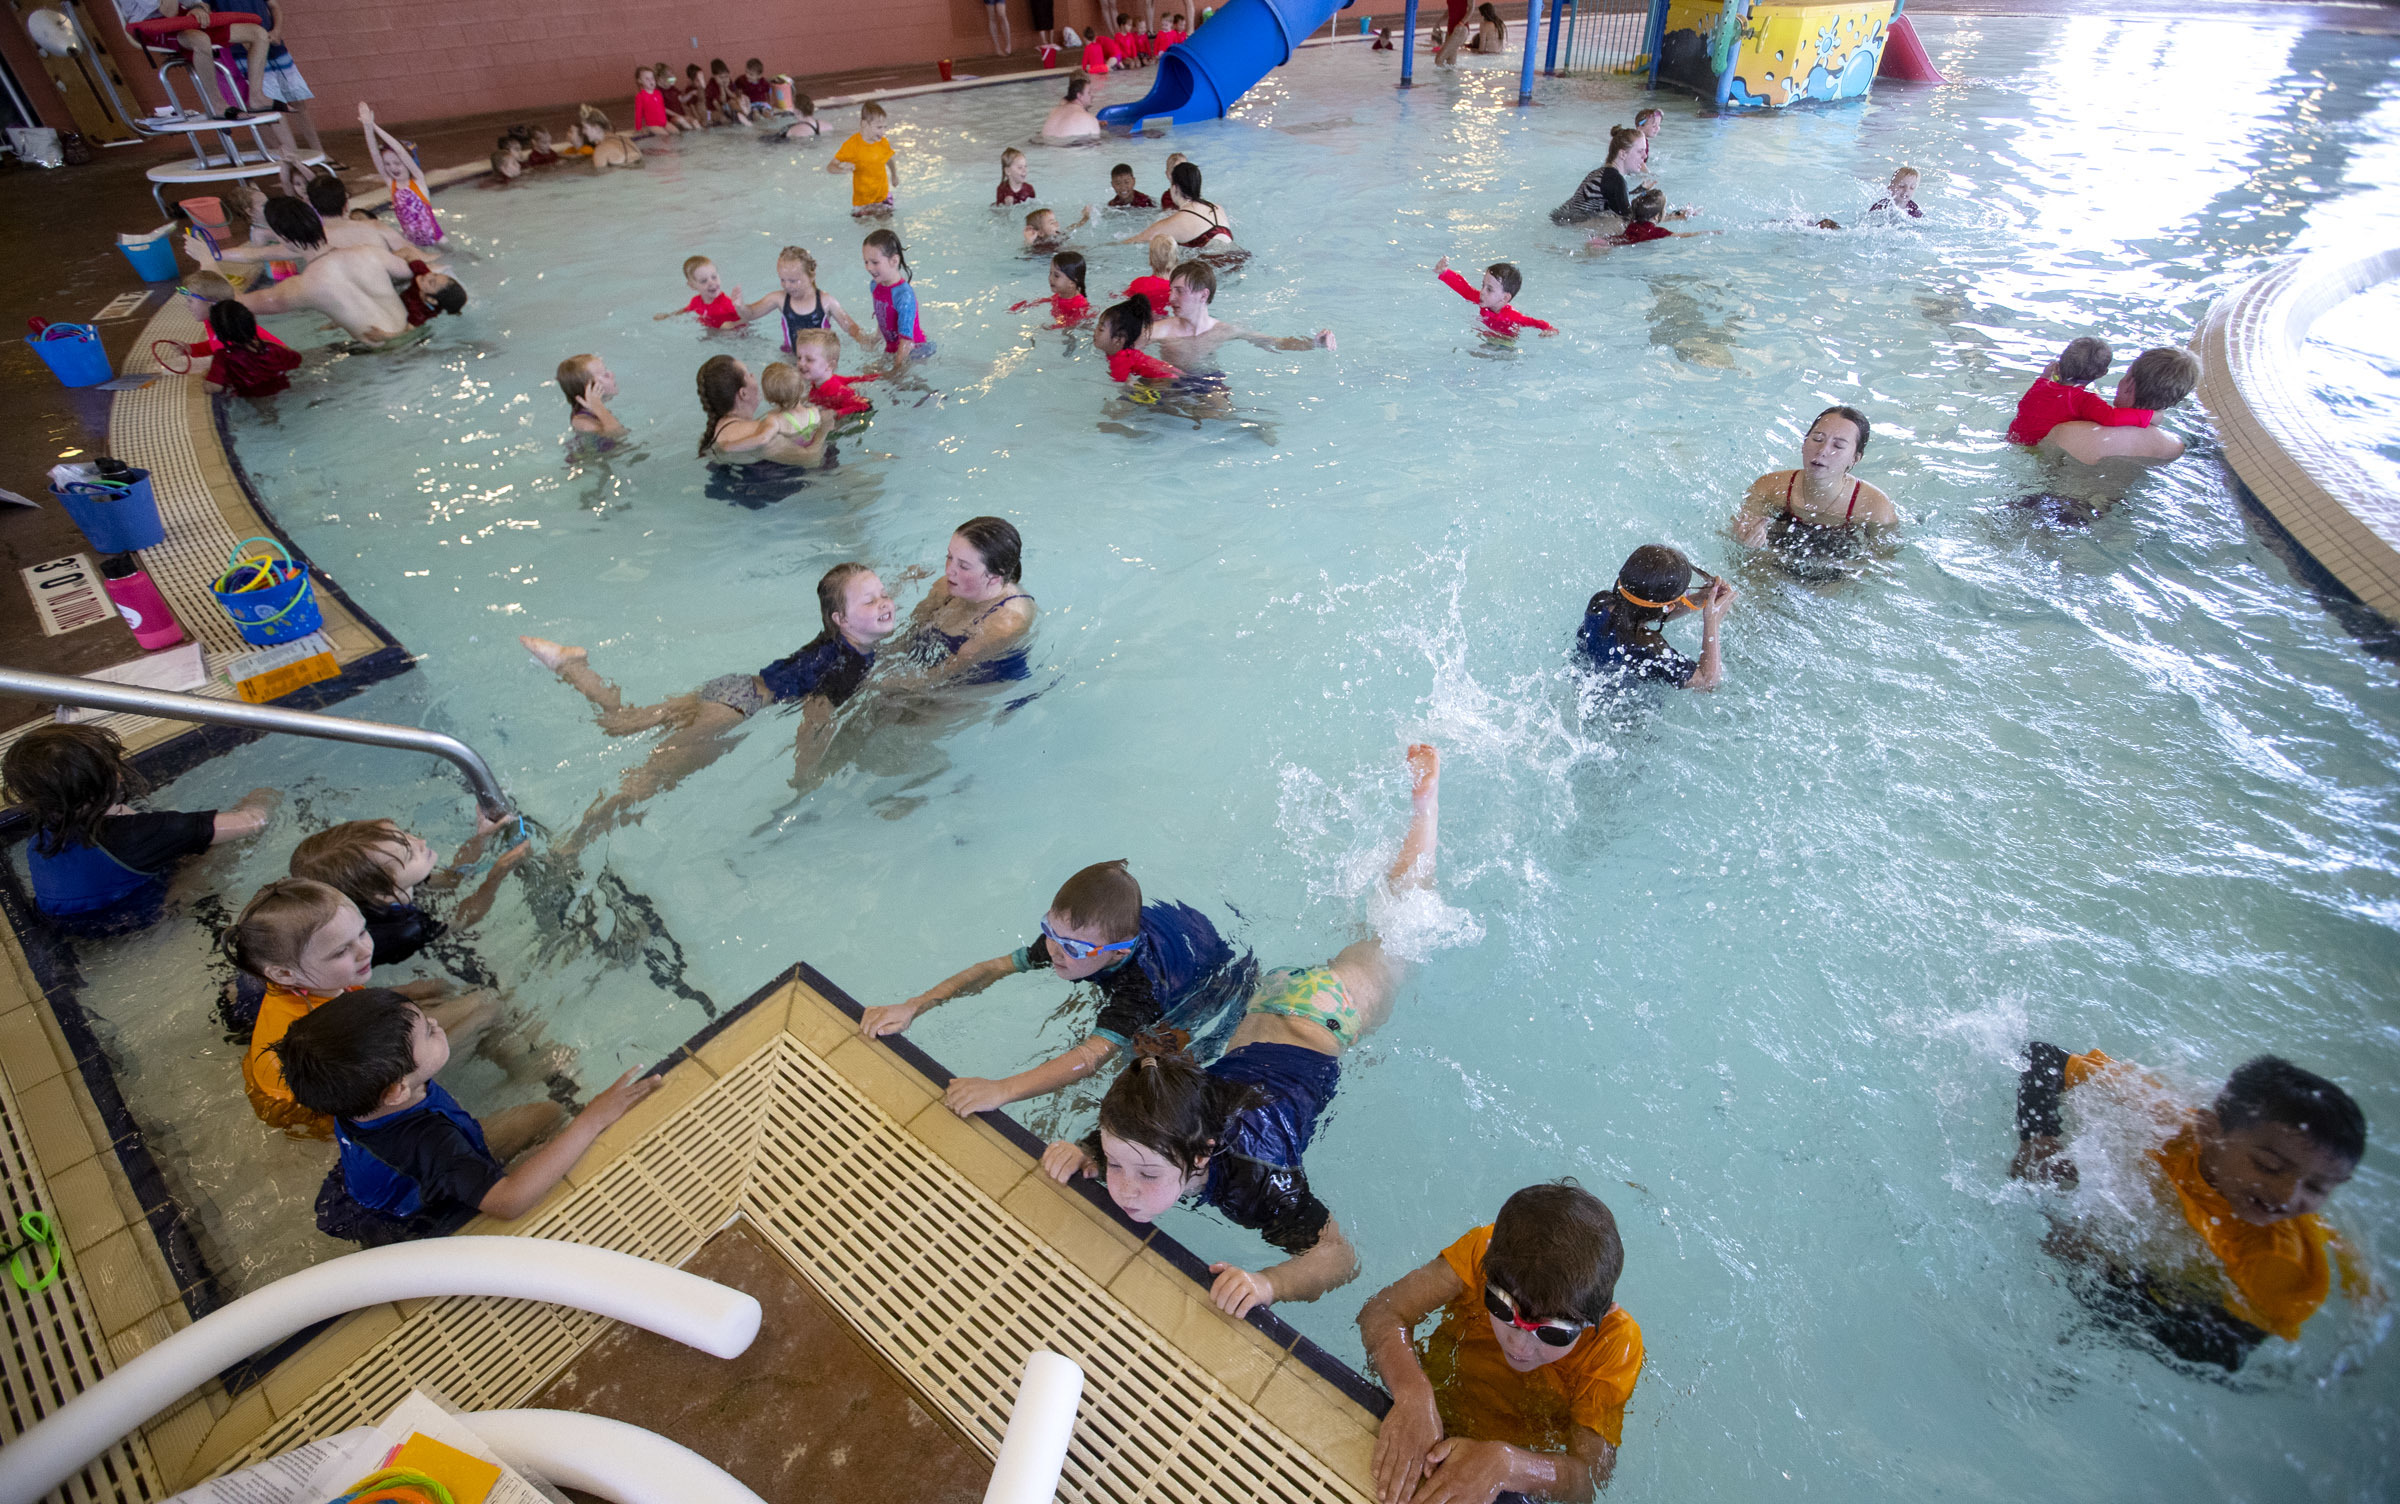 Pool Filtersand Obi Photos World S Largest Swimming Lesson Aims To Create A